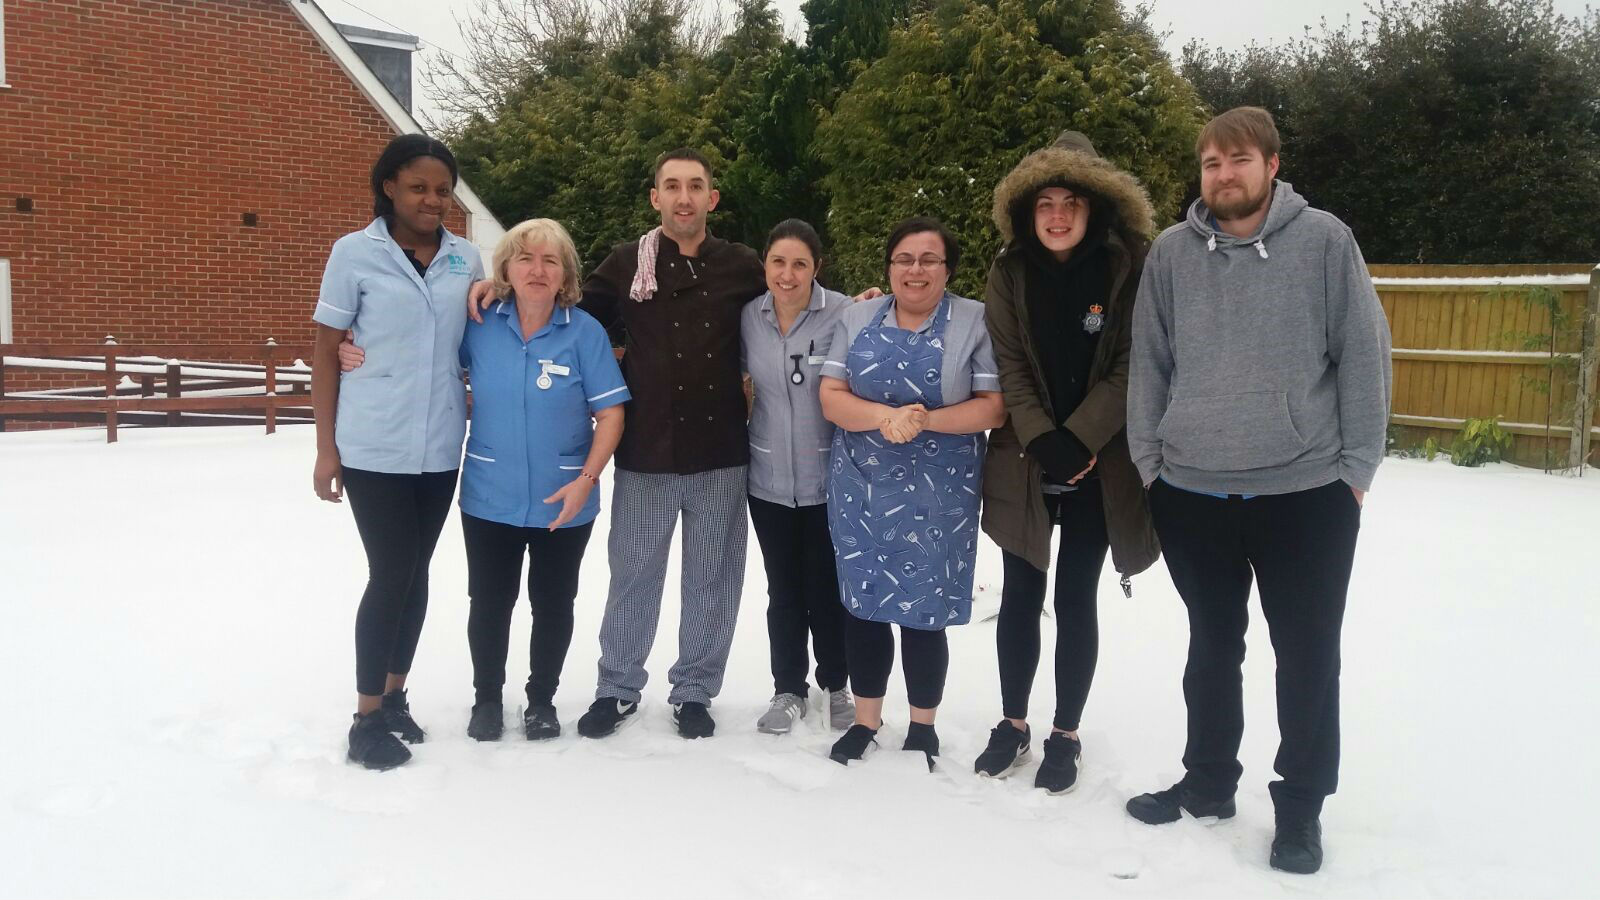 Kingland's 'A Team' Battles The Snow To Get To Work!